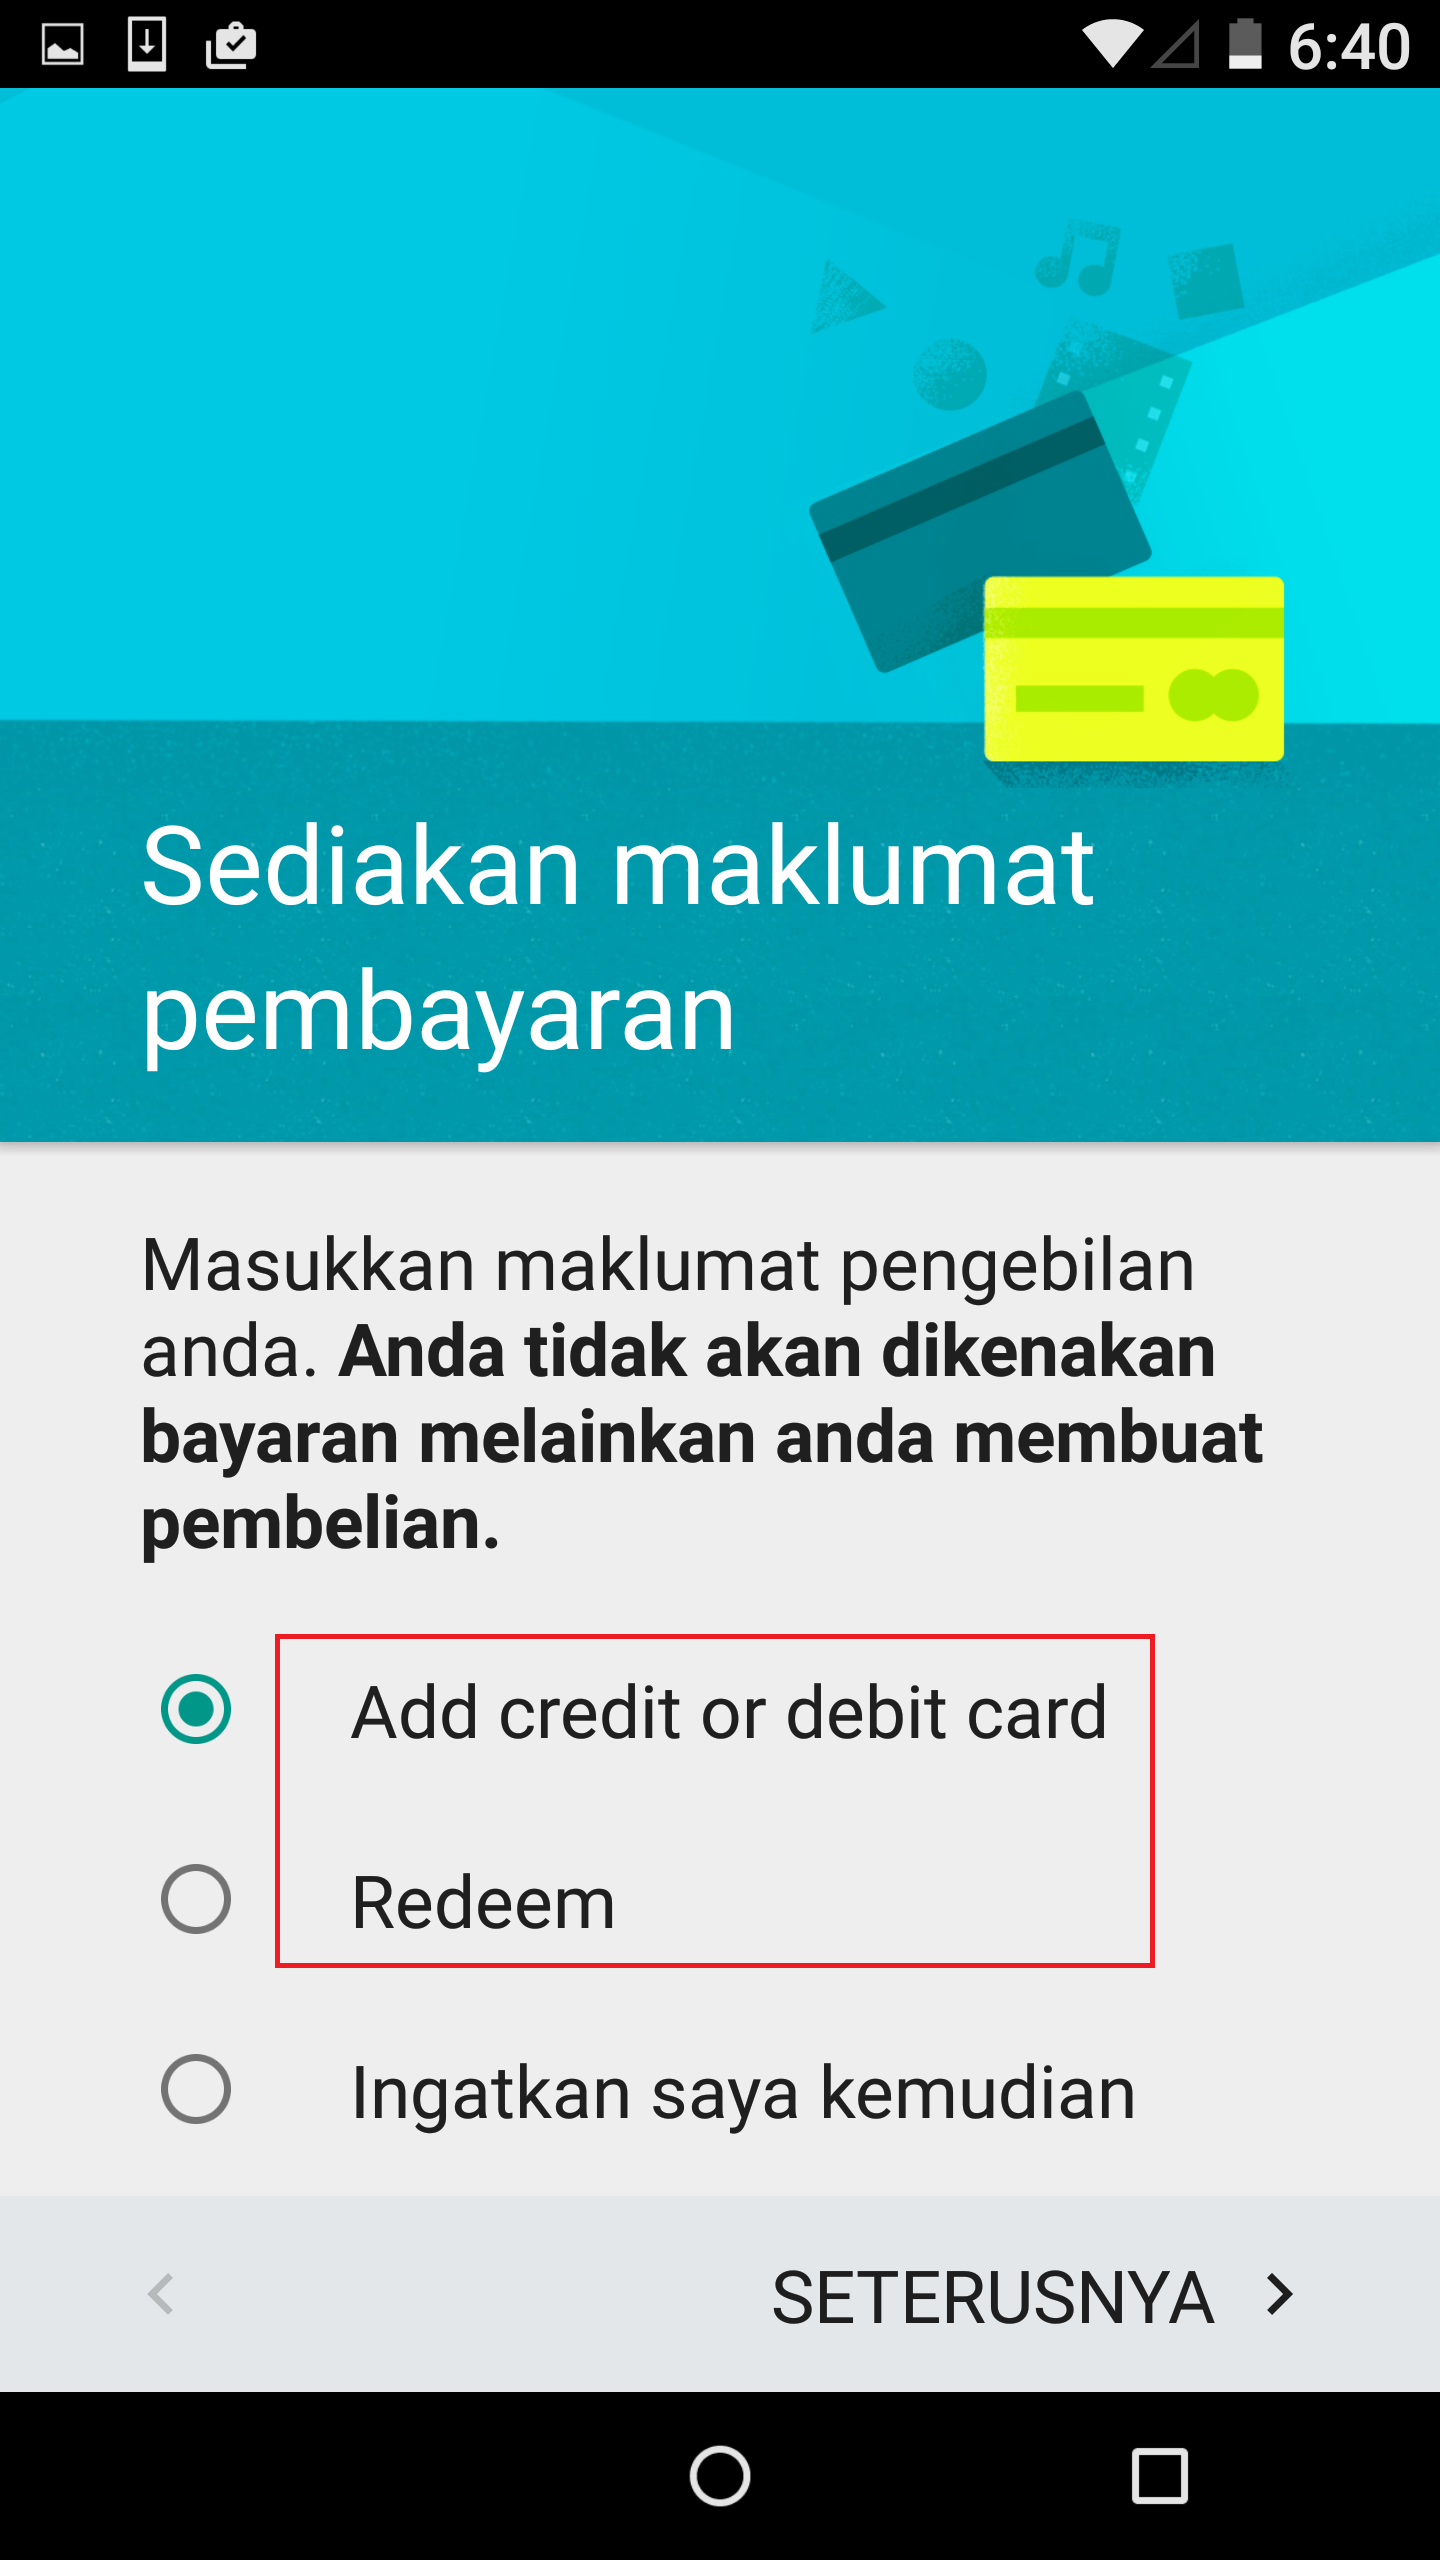 Google Play Store prepare payment info option is not fully translate